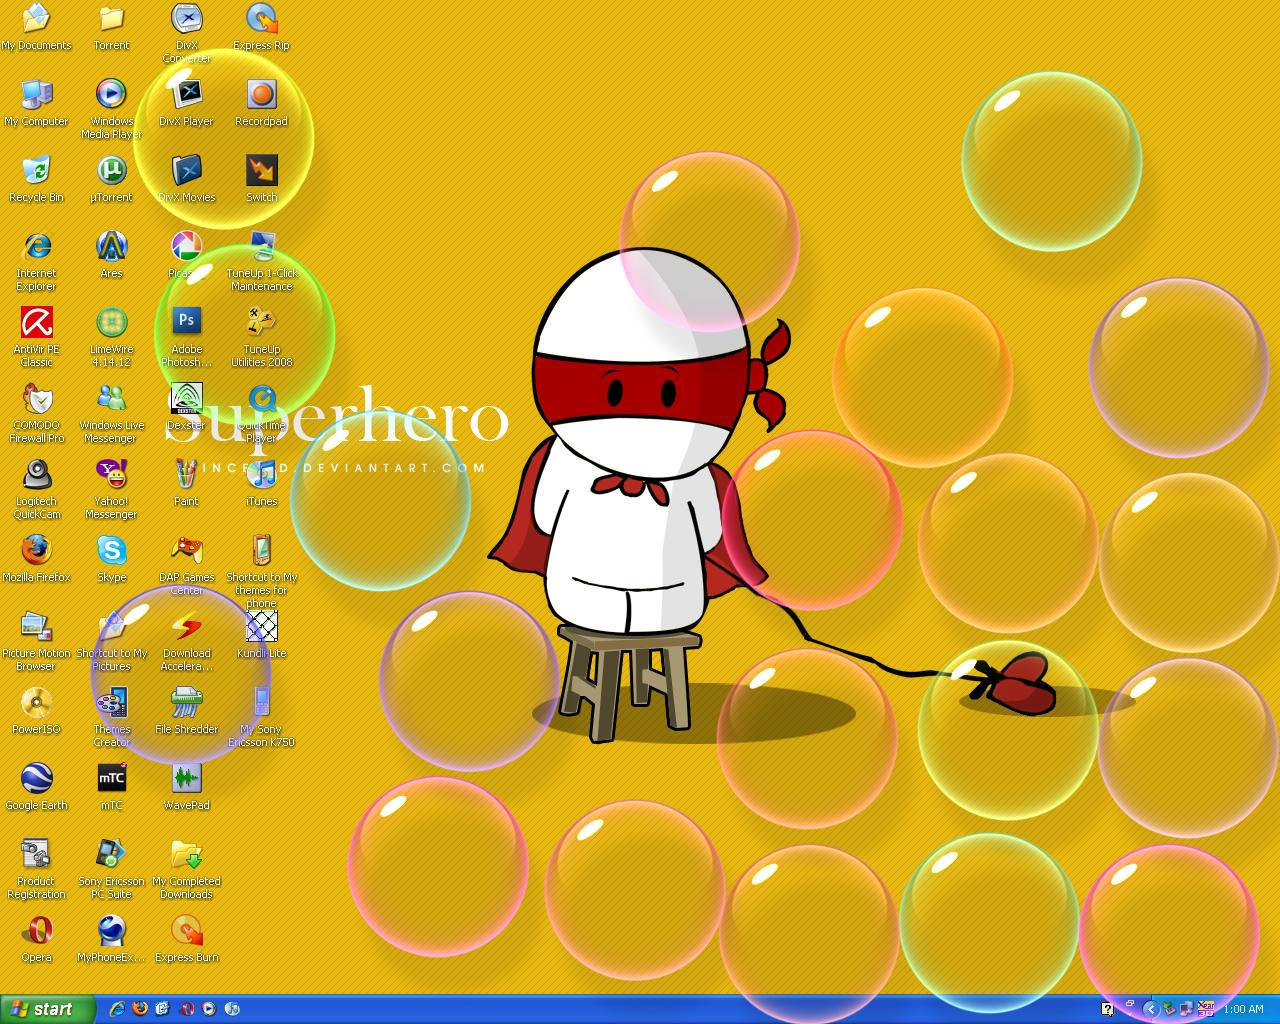 Windows 7 Desktop Screensaver (bubbles) going very fast - Super User